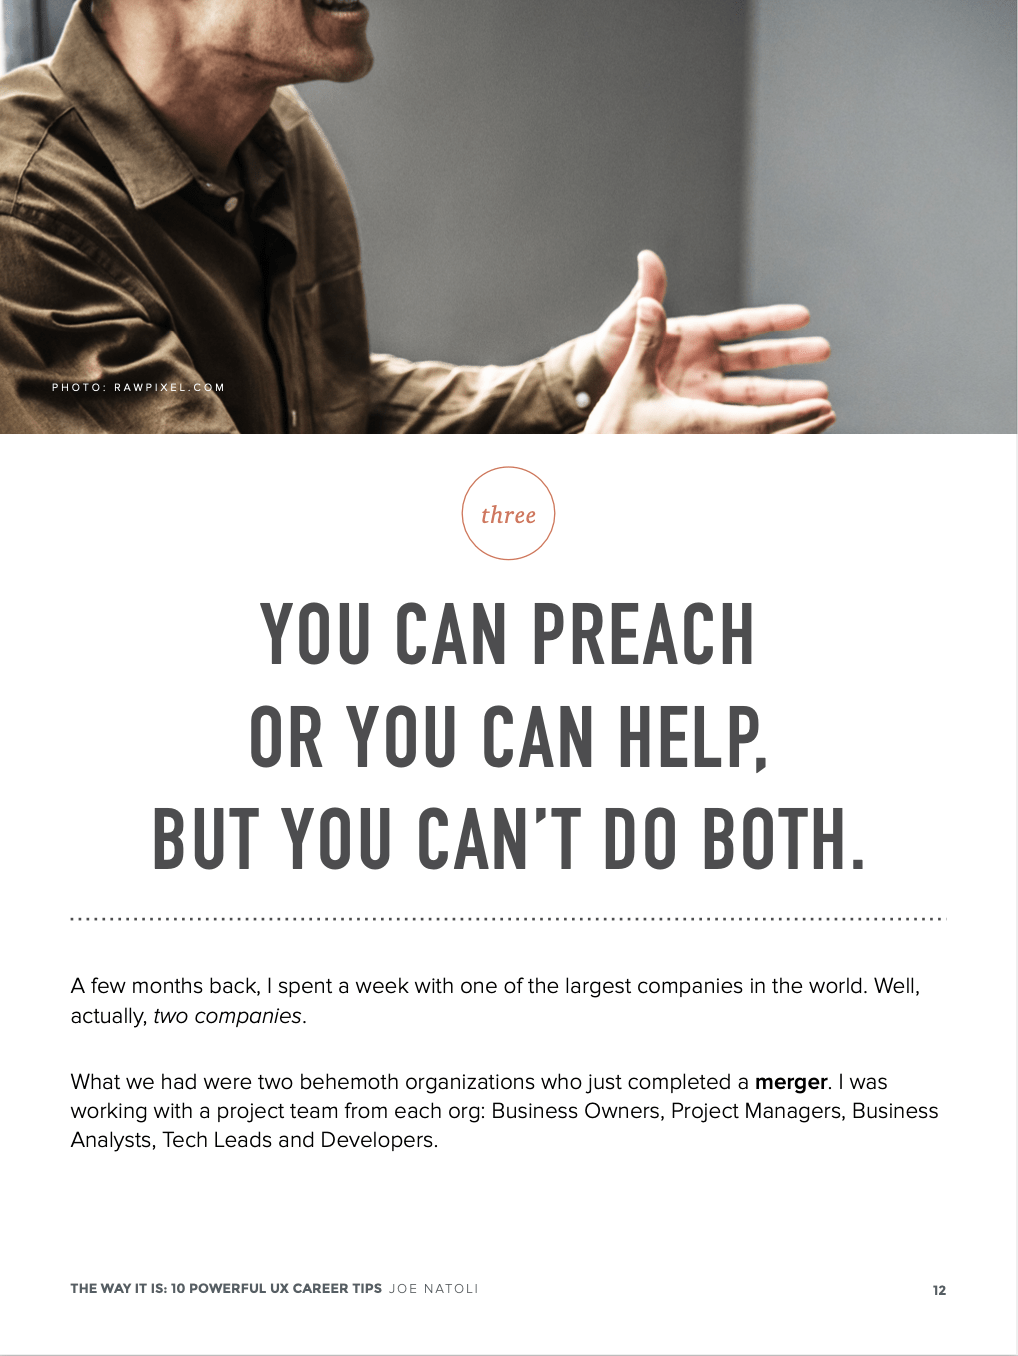 """Additional inside page from Joe Natoli's """"THE WAY IT IS"""" e-book showing the phrase, """"you can preach or you can help, but you can't do both."""""""